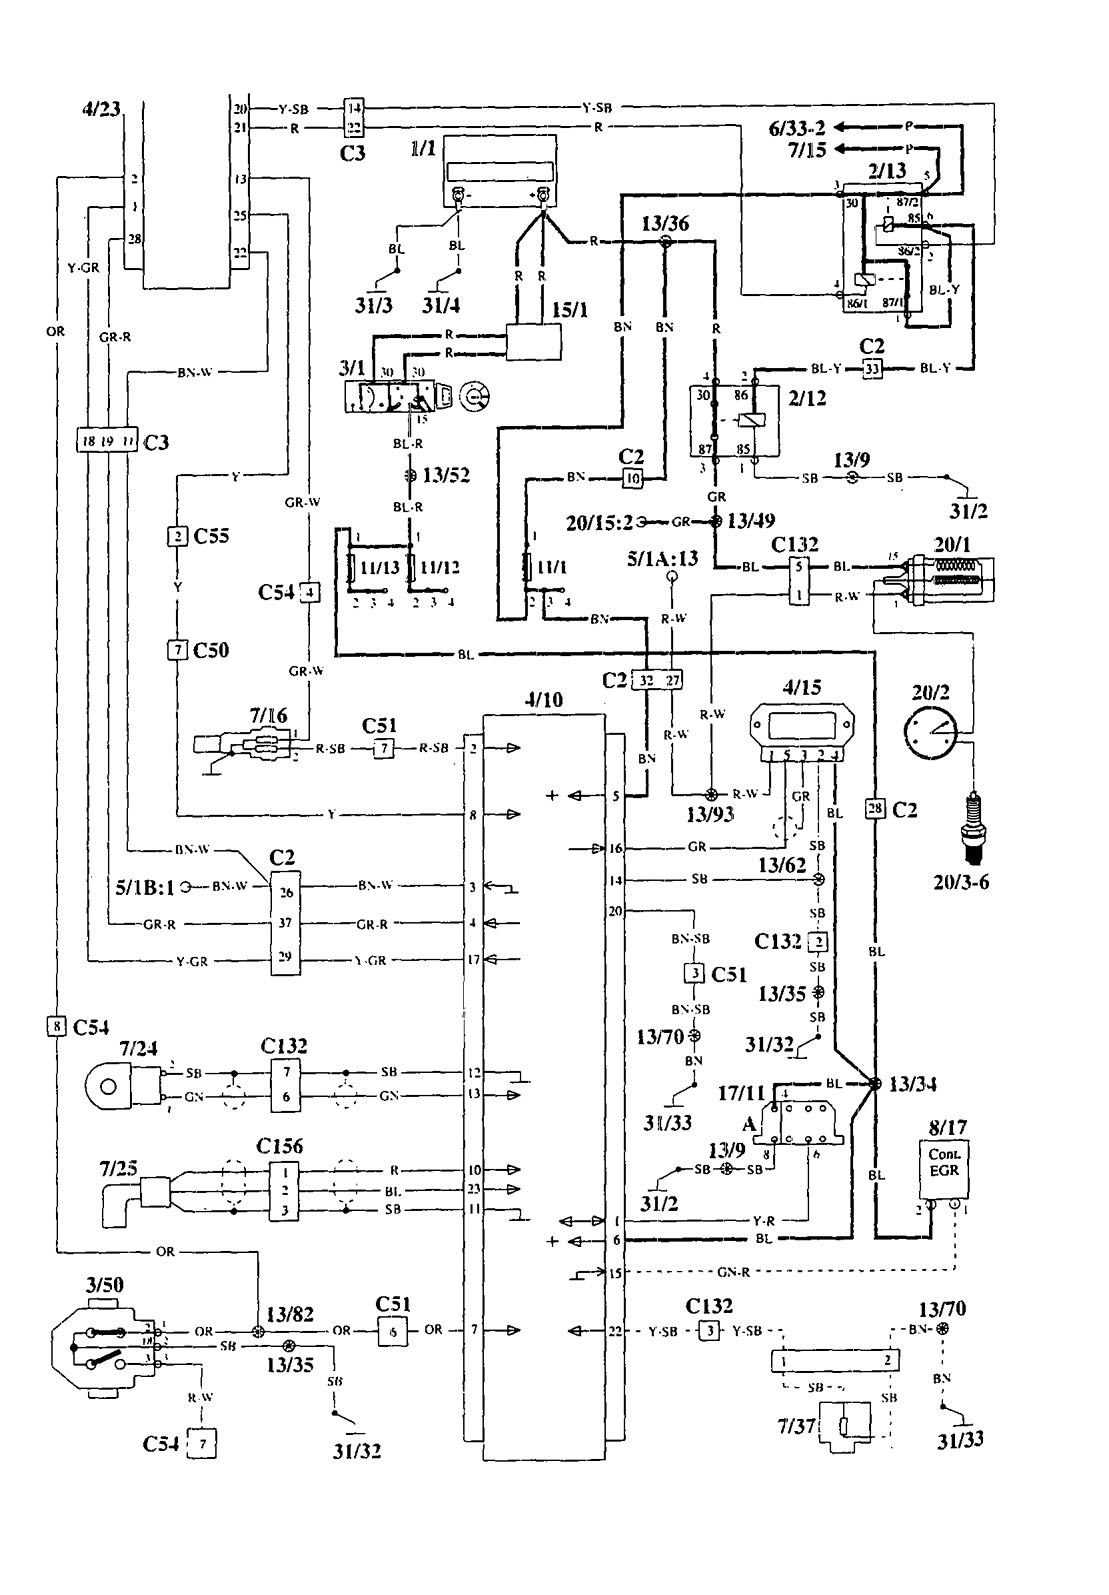 volvo 940 wiring diagram 1995 1995 volvo 940 wiring diagram